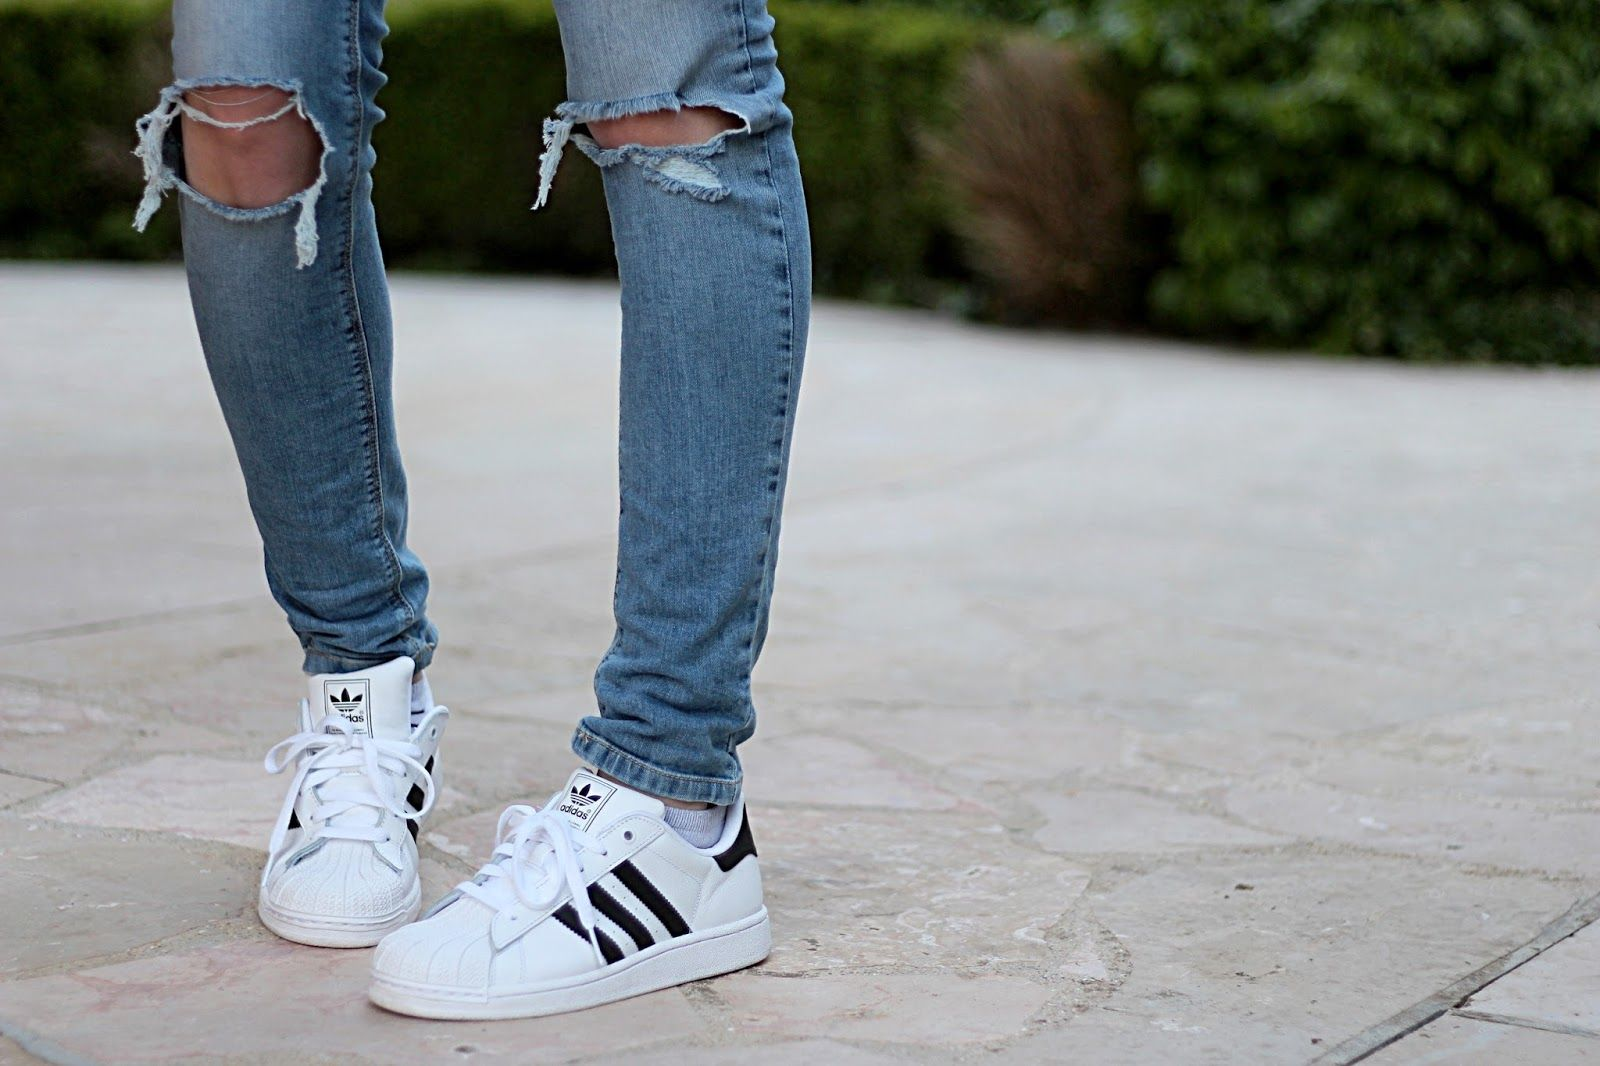 Adidas Superstar 2 With Jeans